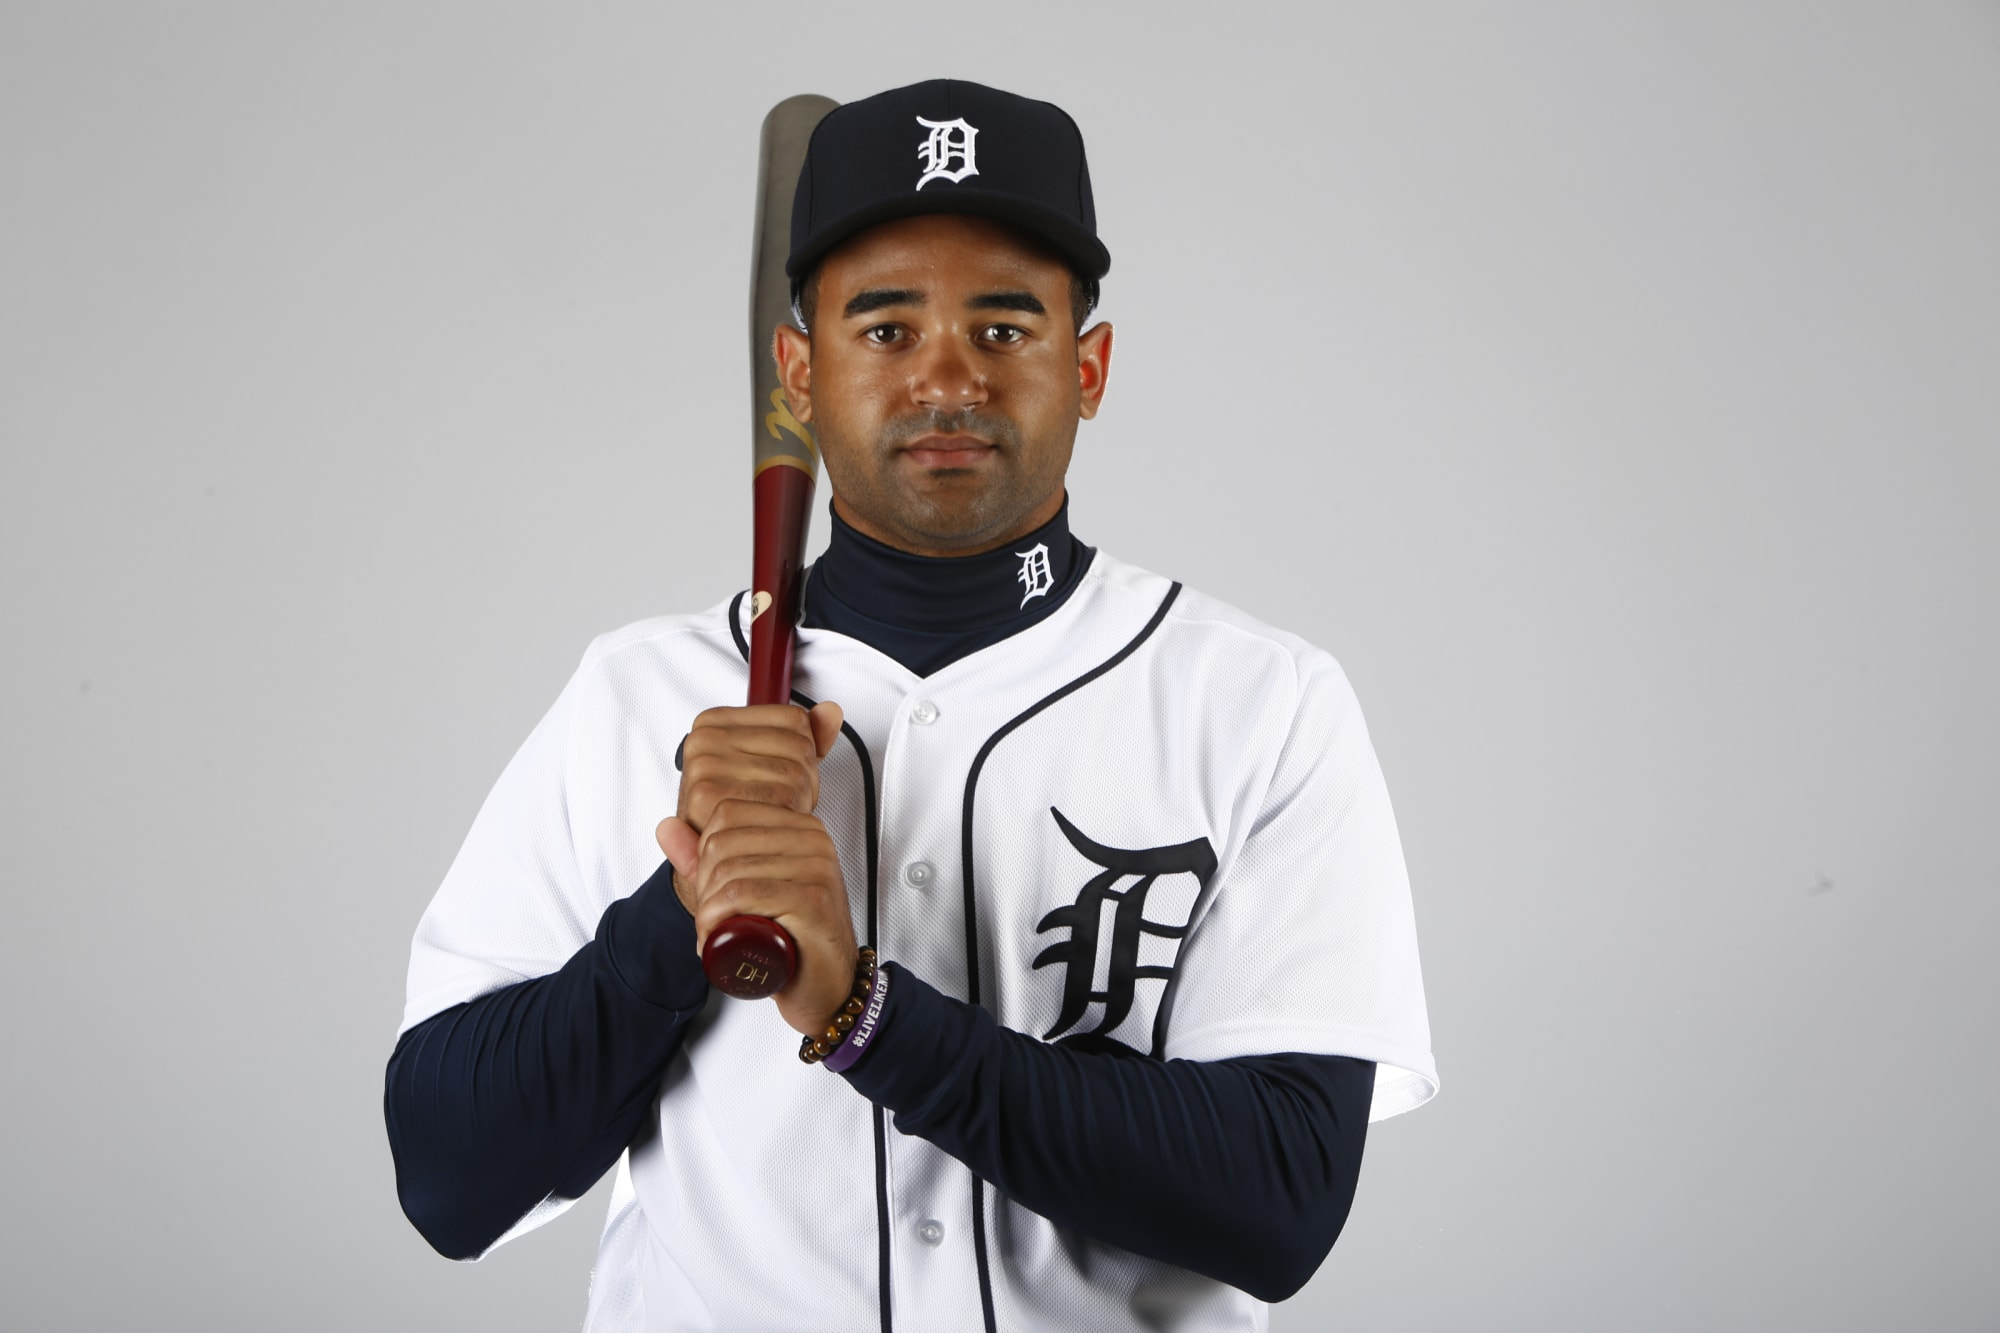 Tigers' Derek Hill might've just made catch of the season during intrasquad game (video)